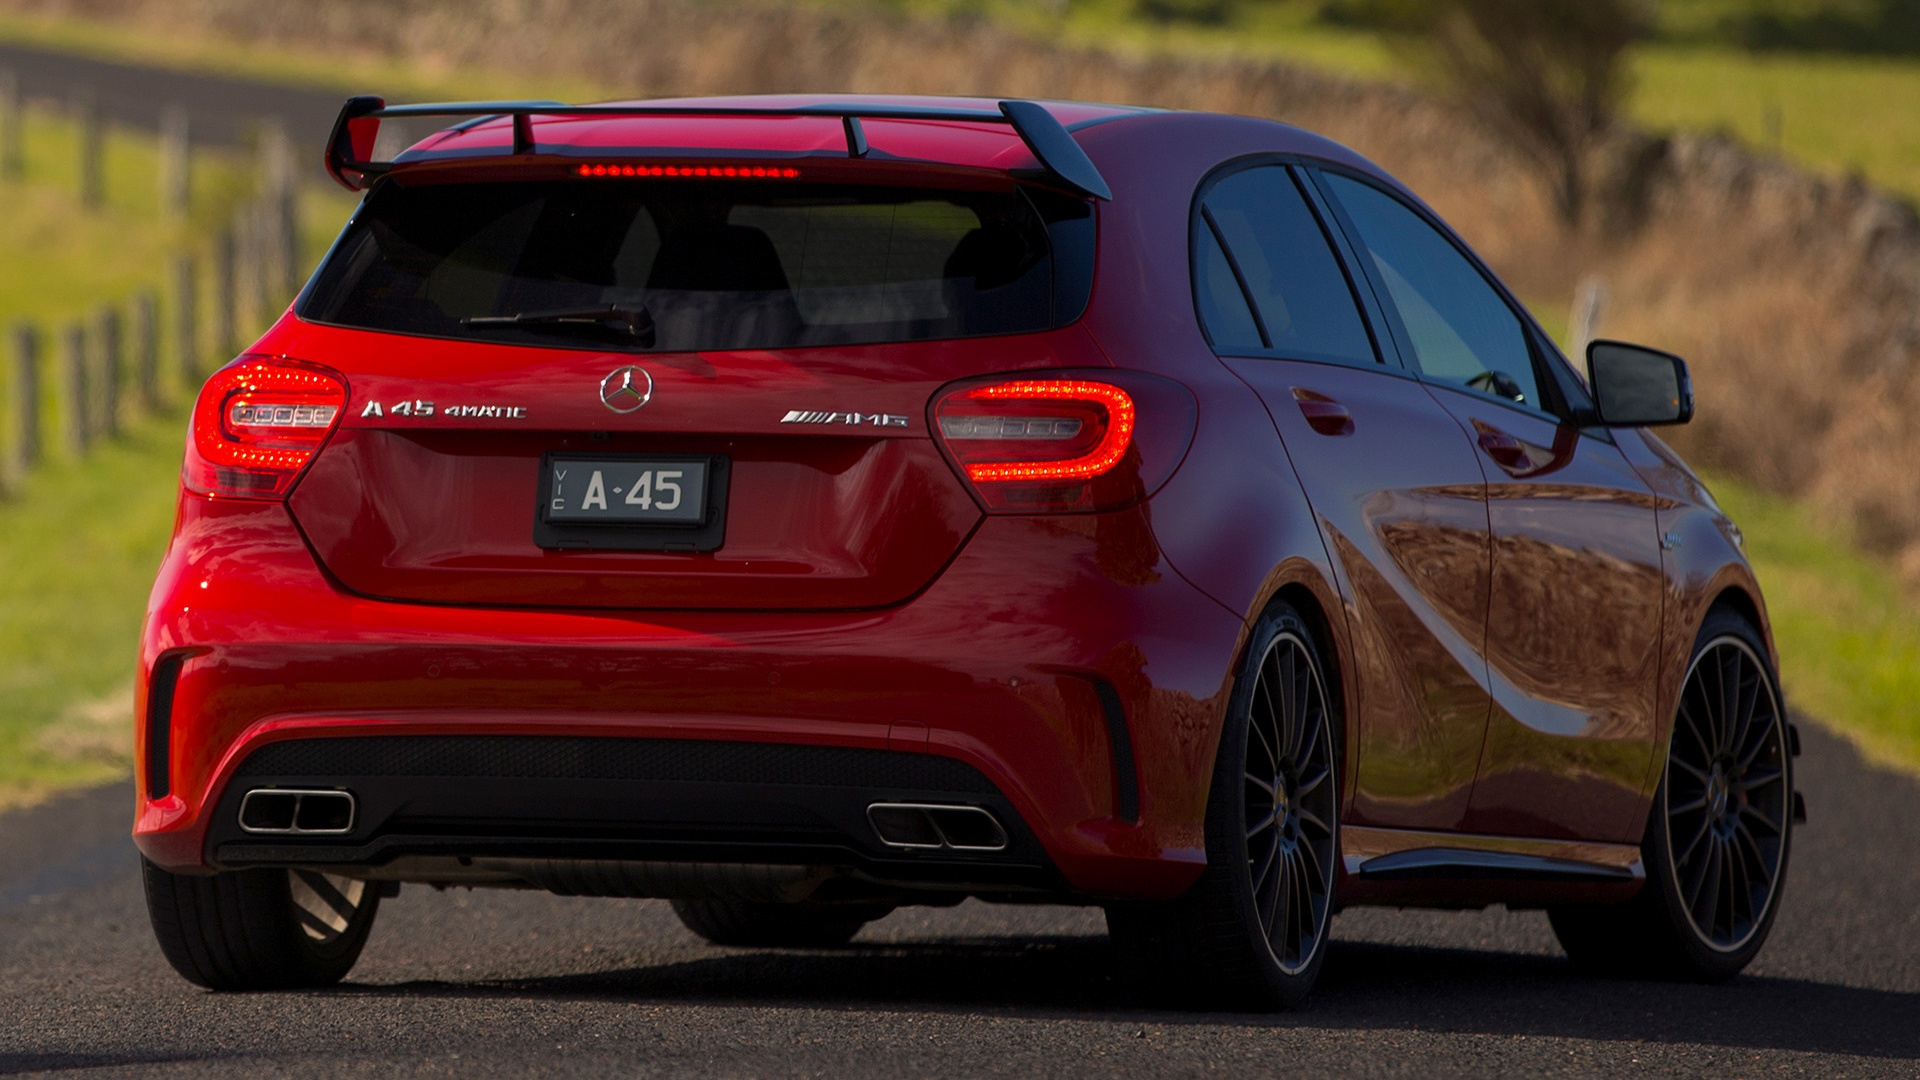 2013 Mercedes-Benz A 45 AMG Edition 1 (AU) - Wallpapers ...